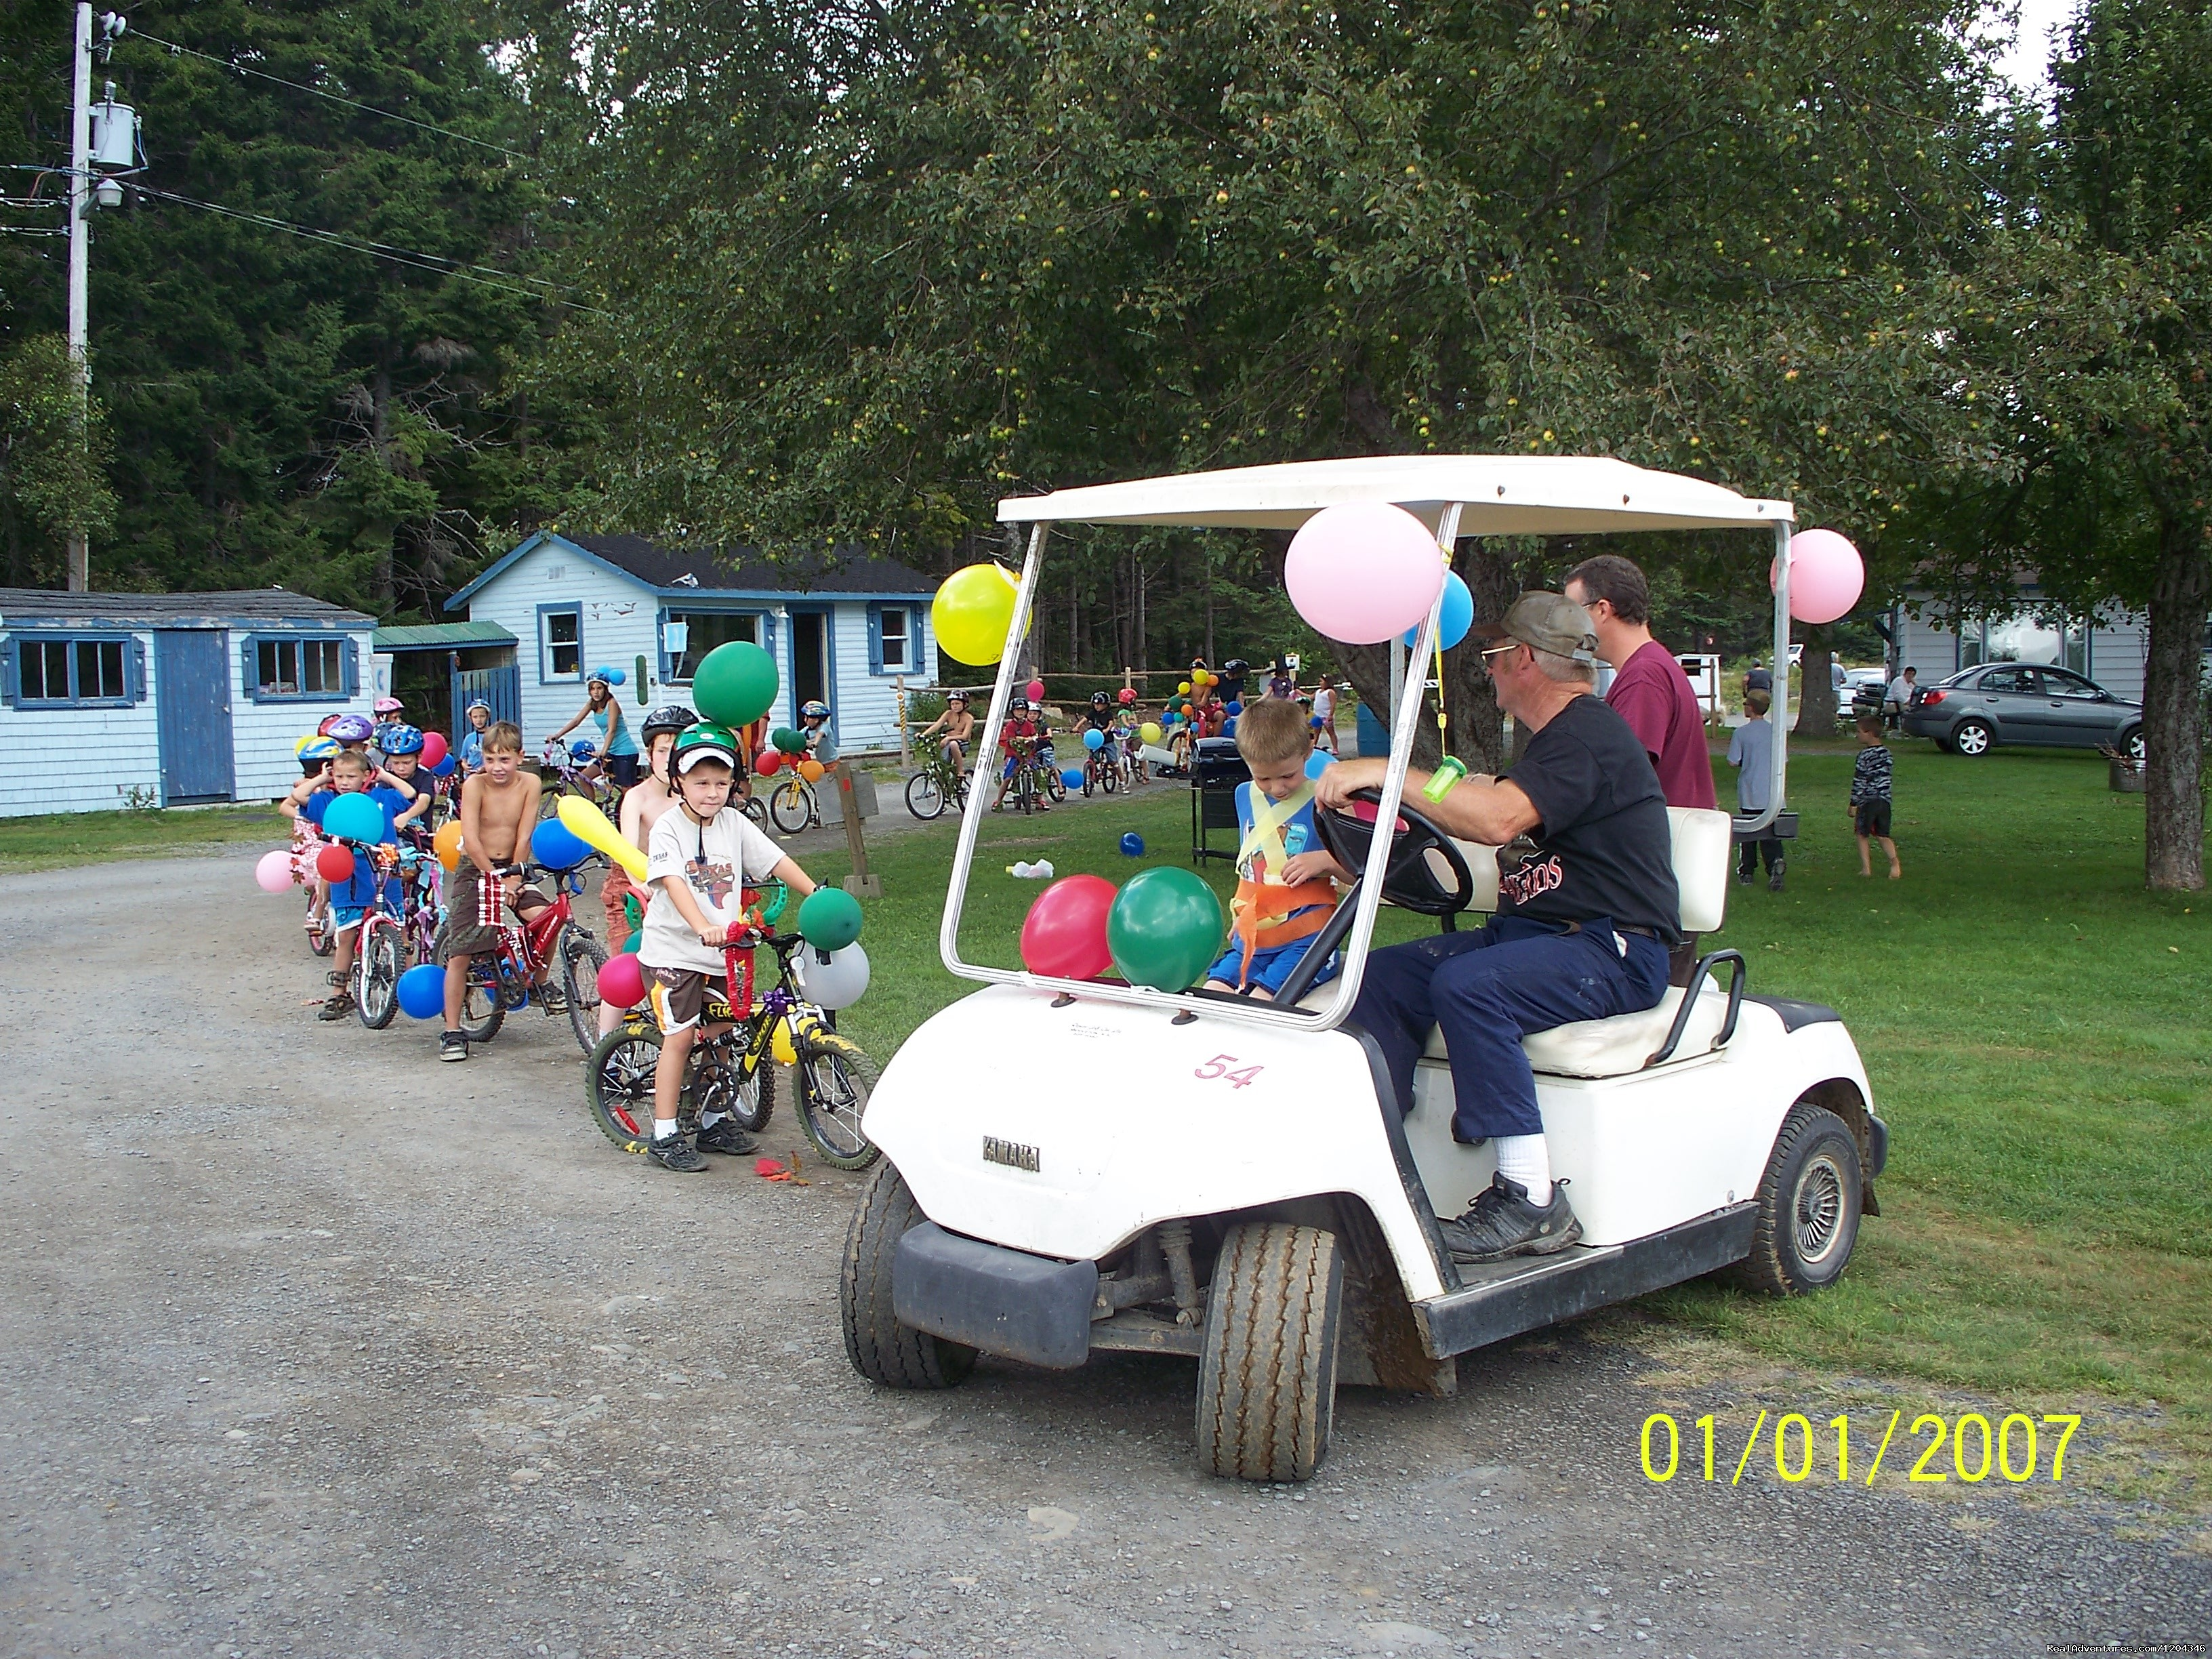 owner leading the kids bike parade | Image #10/11 | Little Lake Family Campground